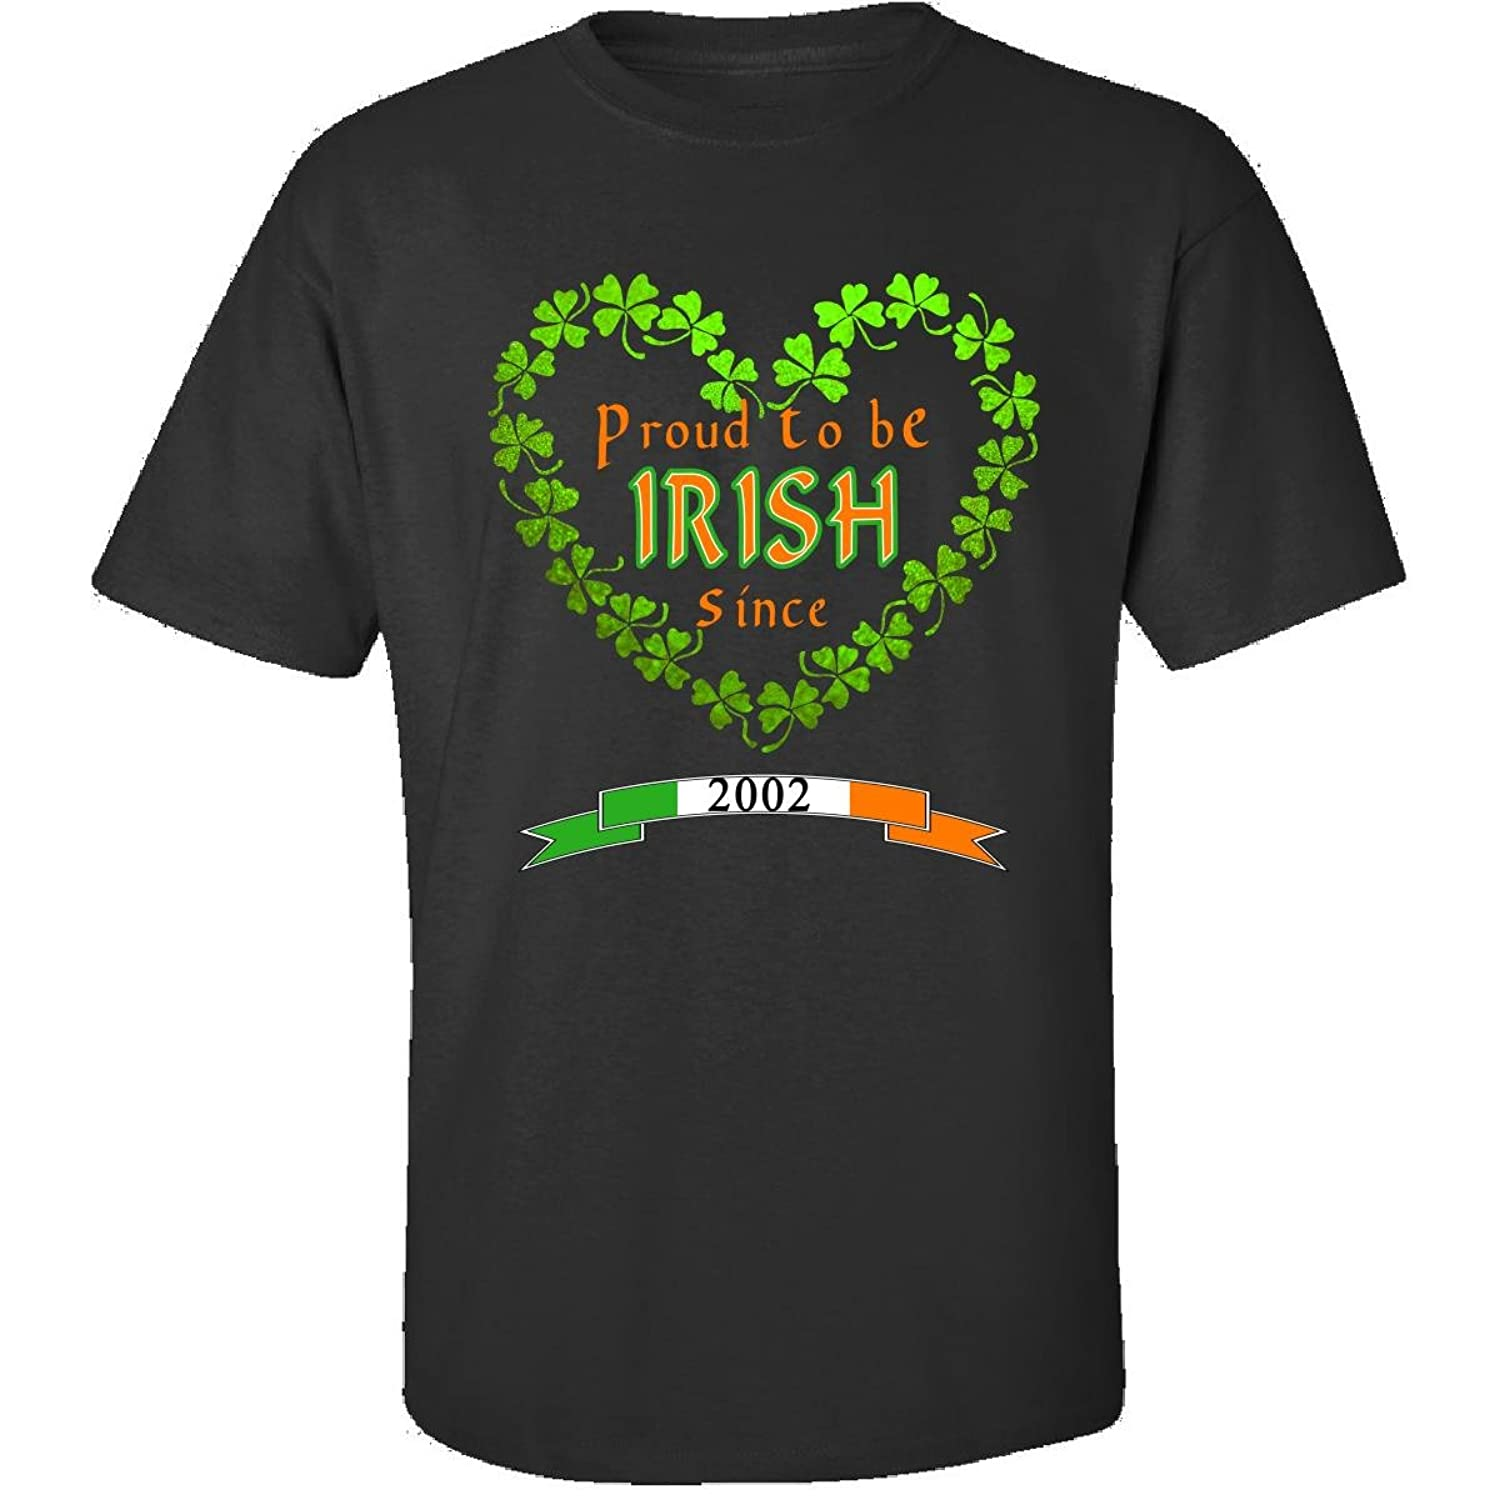 Proud To Be Irish Since 2002 Cool Birthday Gift For Friends - Adult Shirt